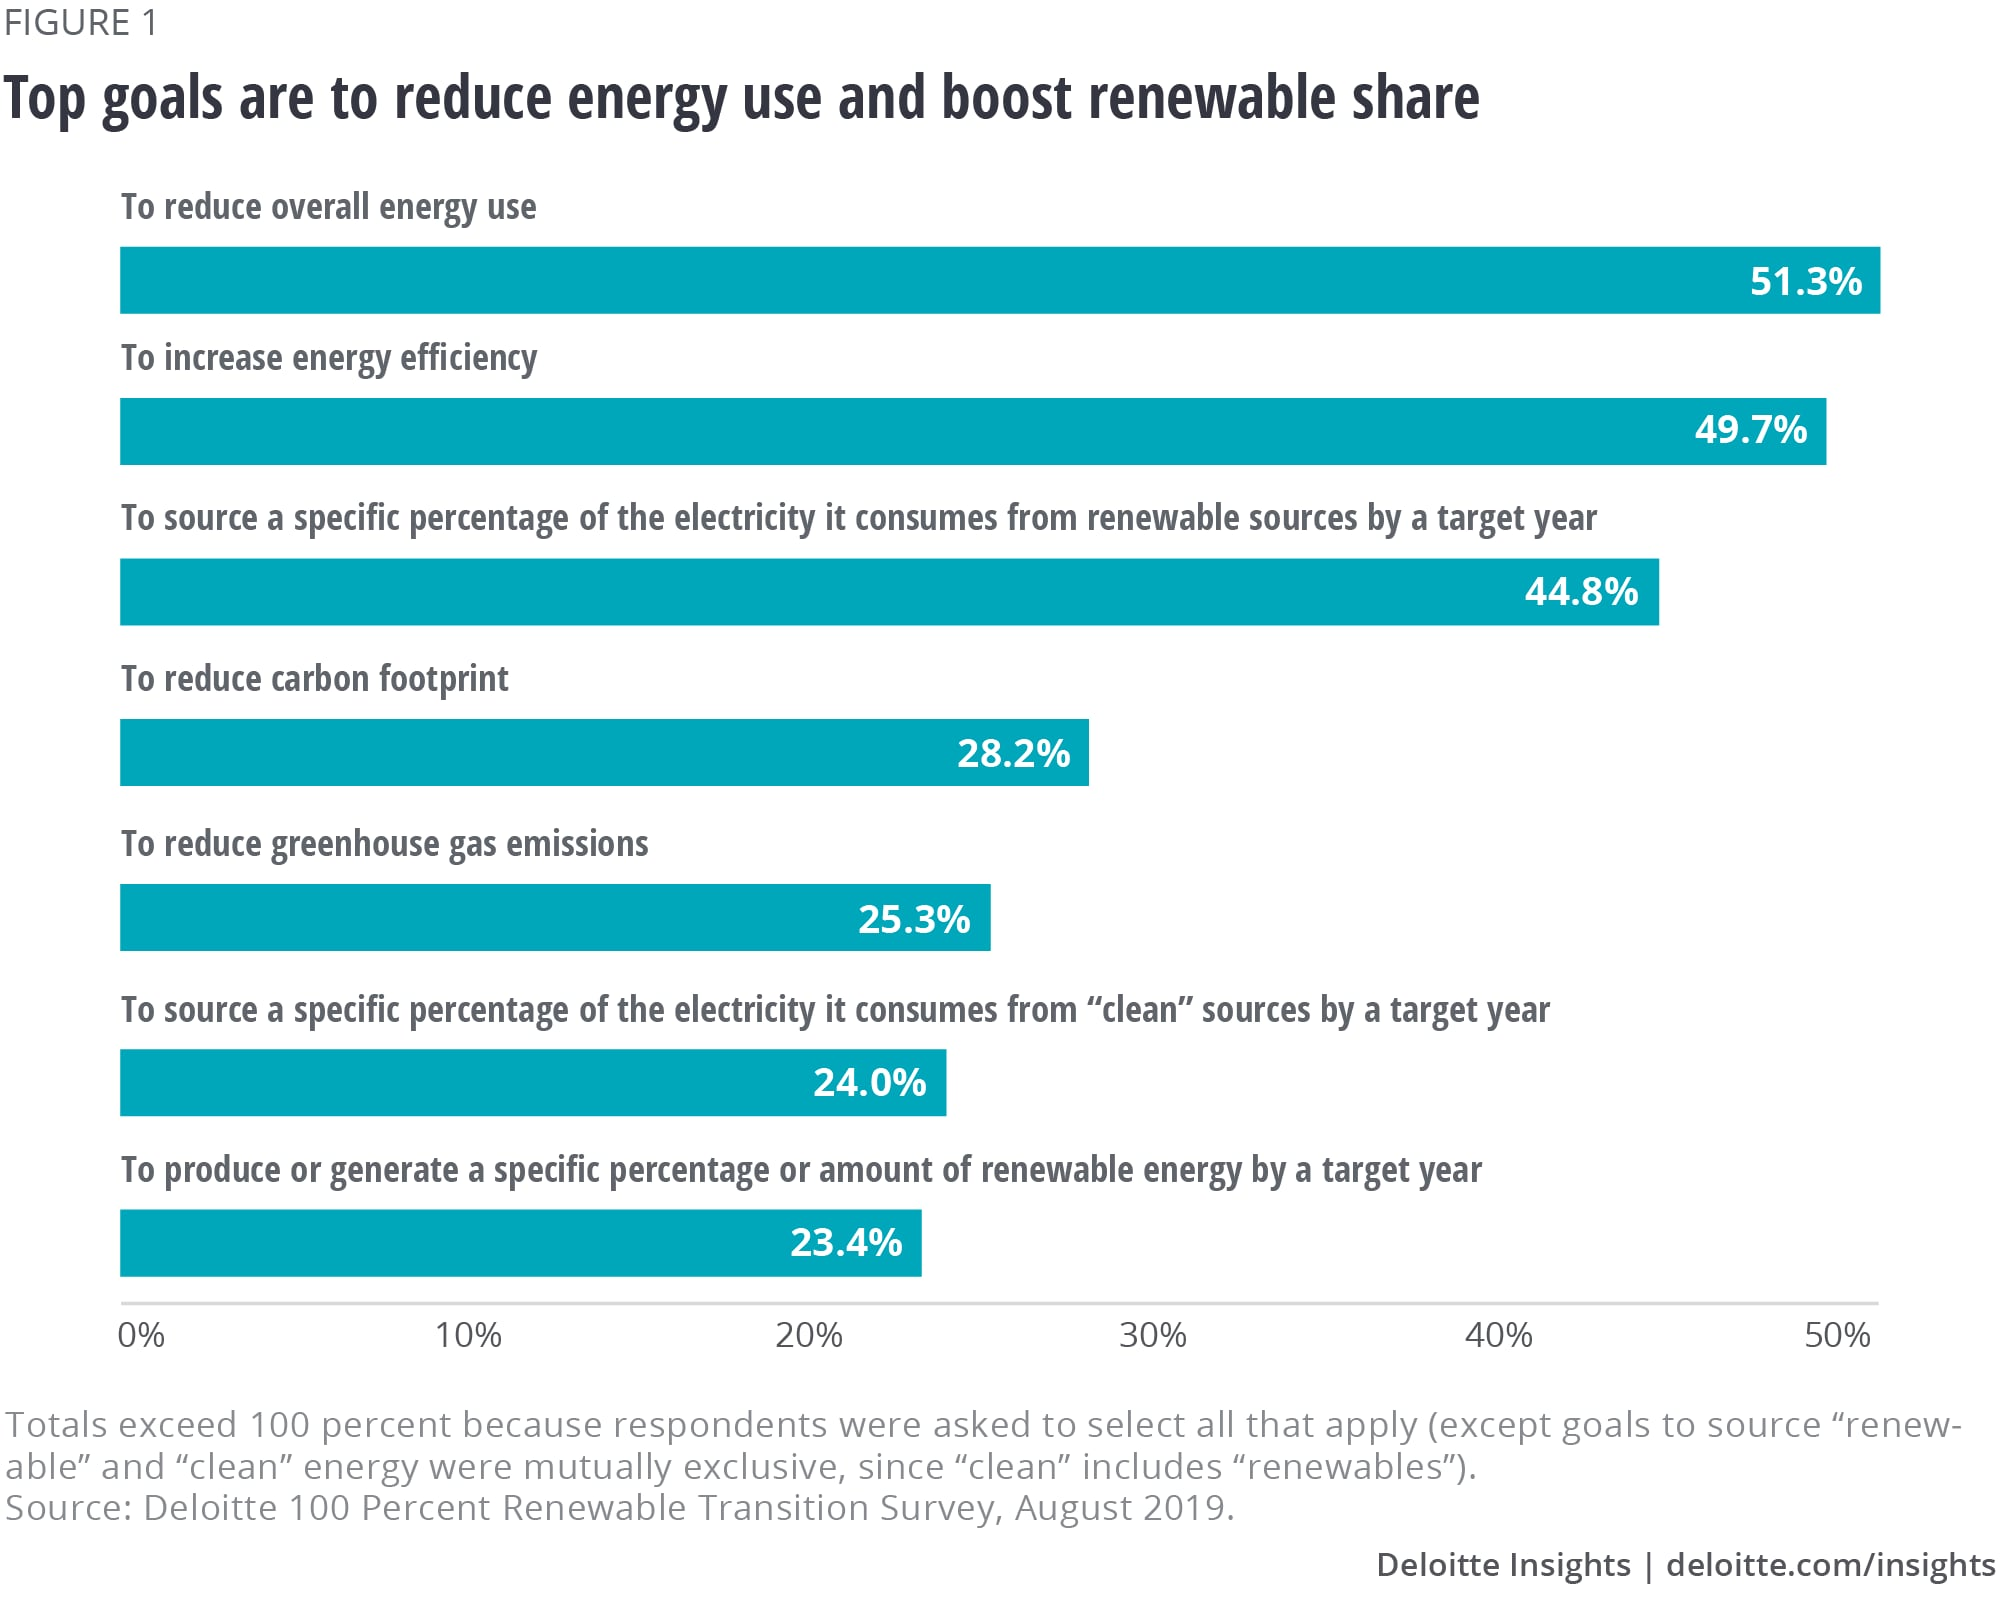 Top goals are to reduce energy use and boost renewable share